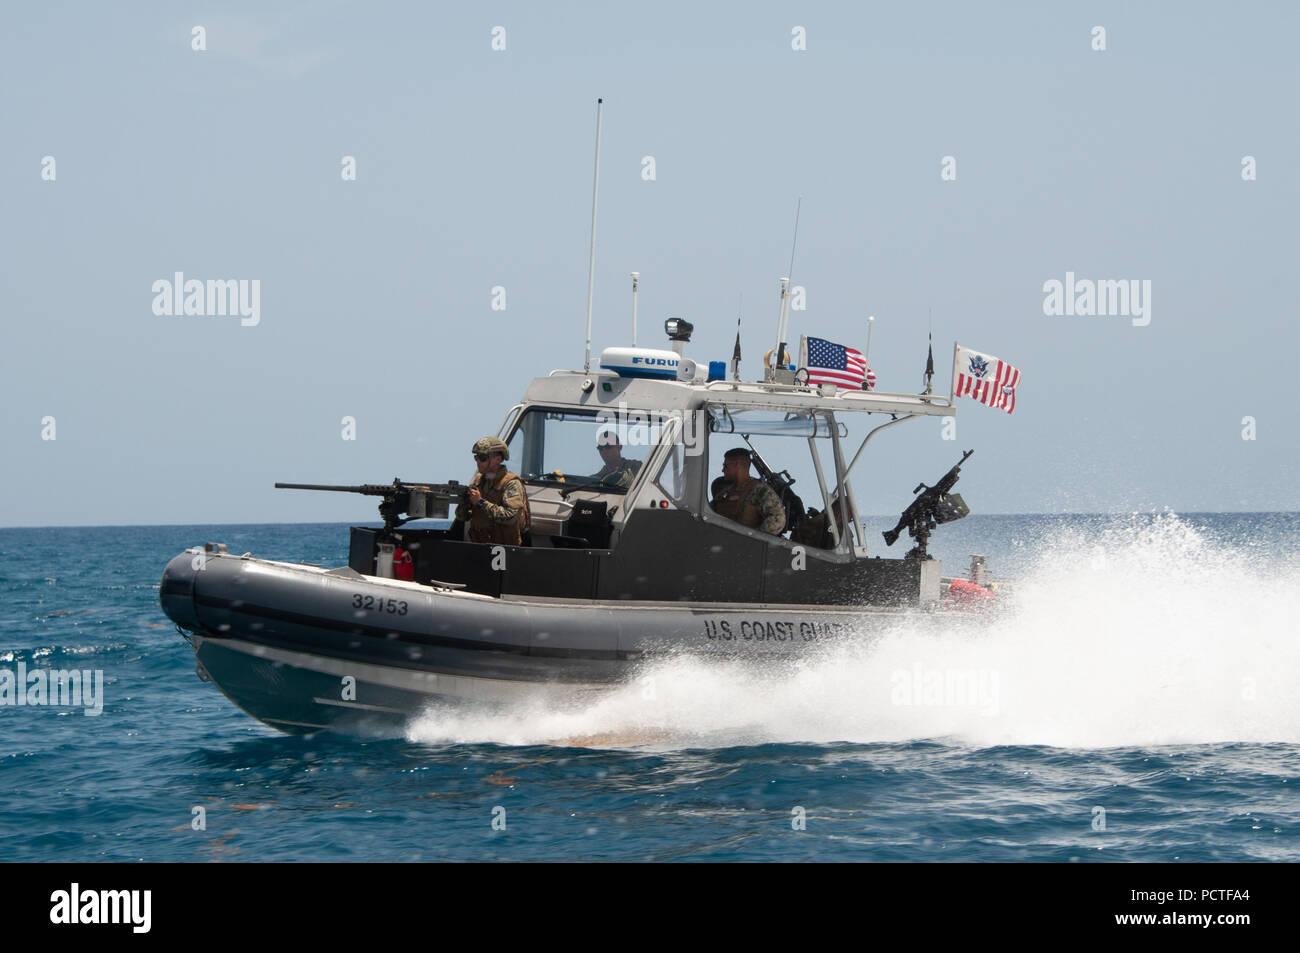 Members of Port Security Unit 309 waterside division underway for a Anti-terrorism, Force Protection Mission Patrol off the coast of Guantanamo Bay, Cuba, July 23, 2018. Port Security Unit 309 is deployed for 9 months in support of Operation Freedom's Sentinel. - Stock Image